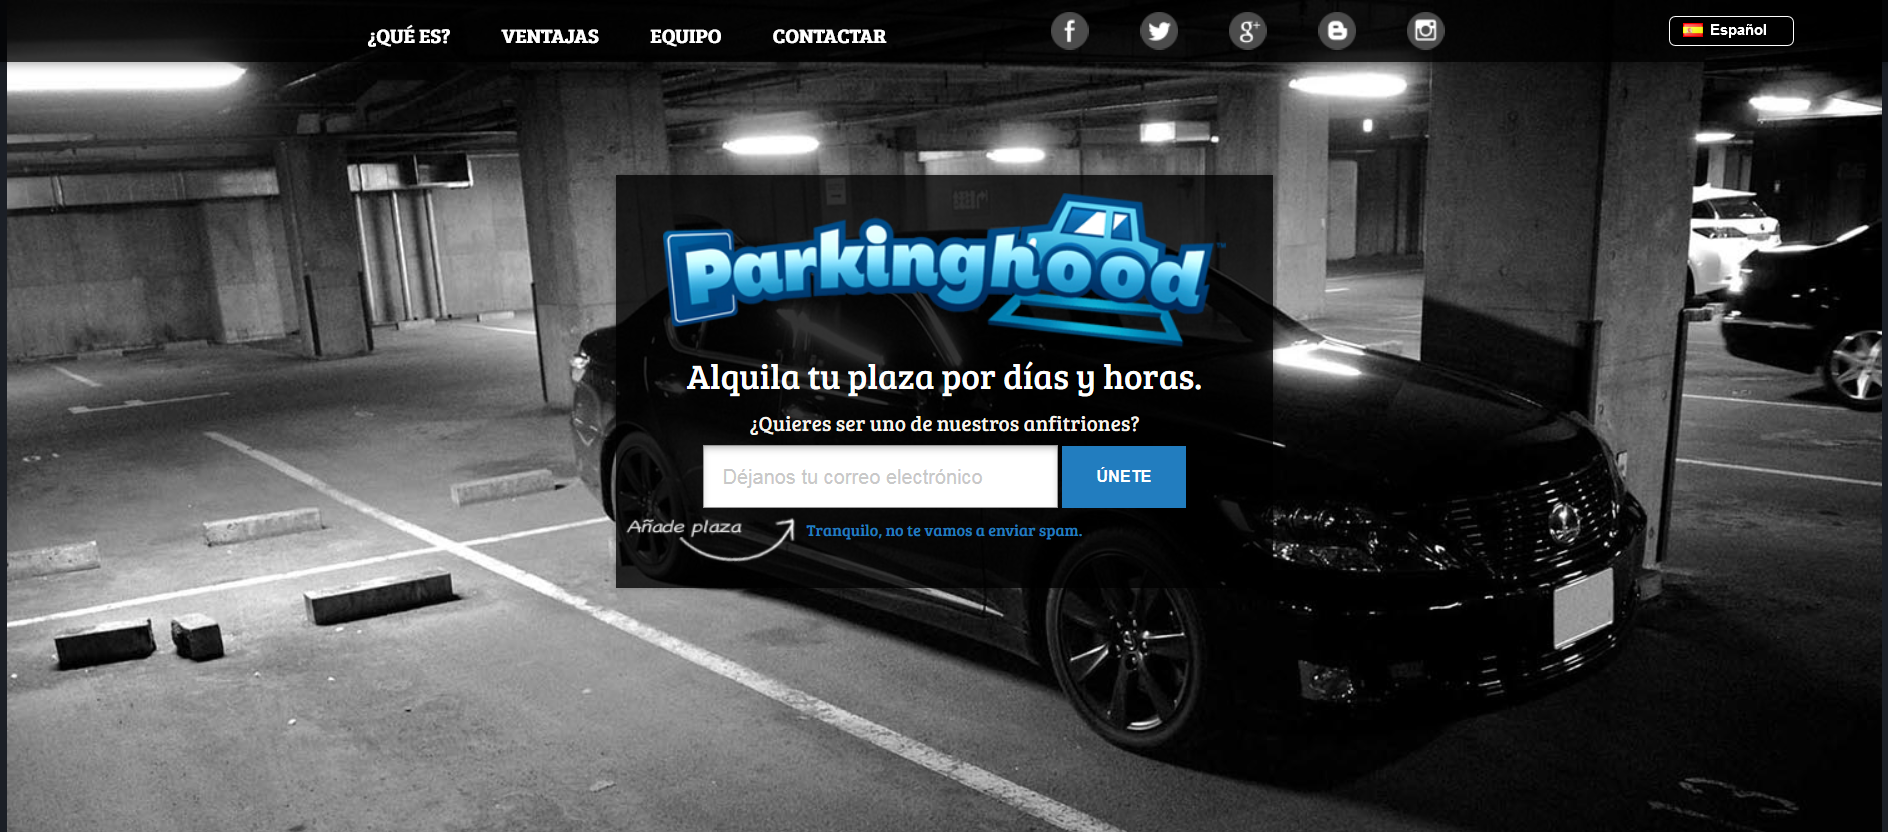 Parkinghood compartir parking